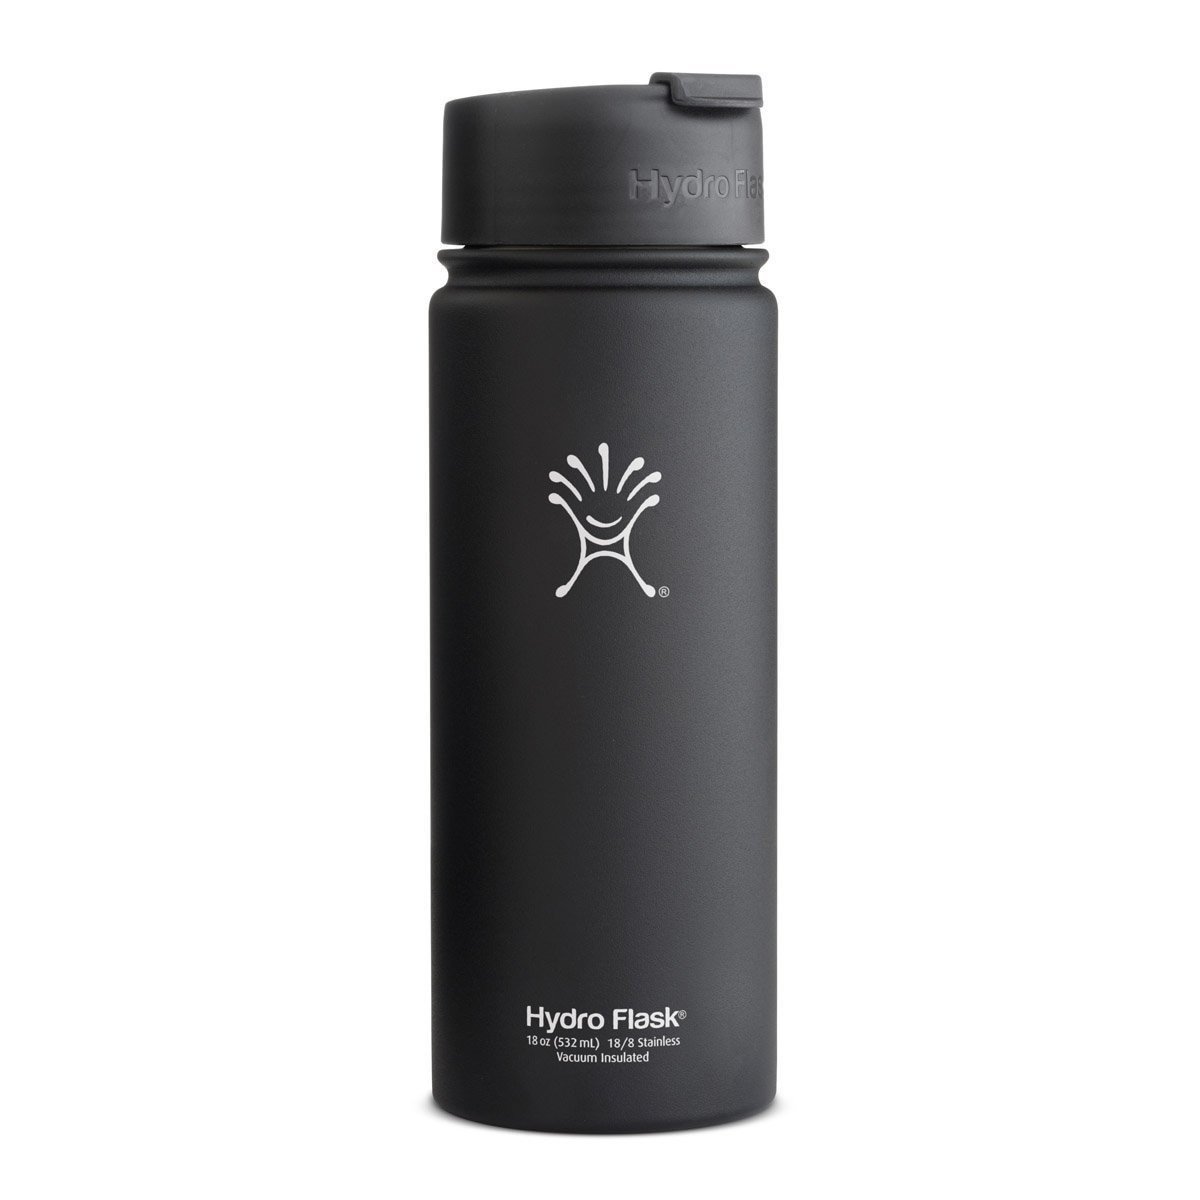 Hydro Flask 18 oz. Wide mouth Stainless Steel Water Bottle Value Pack